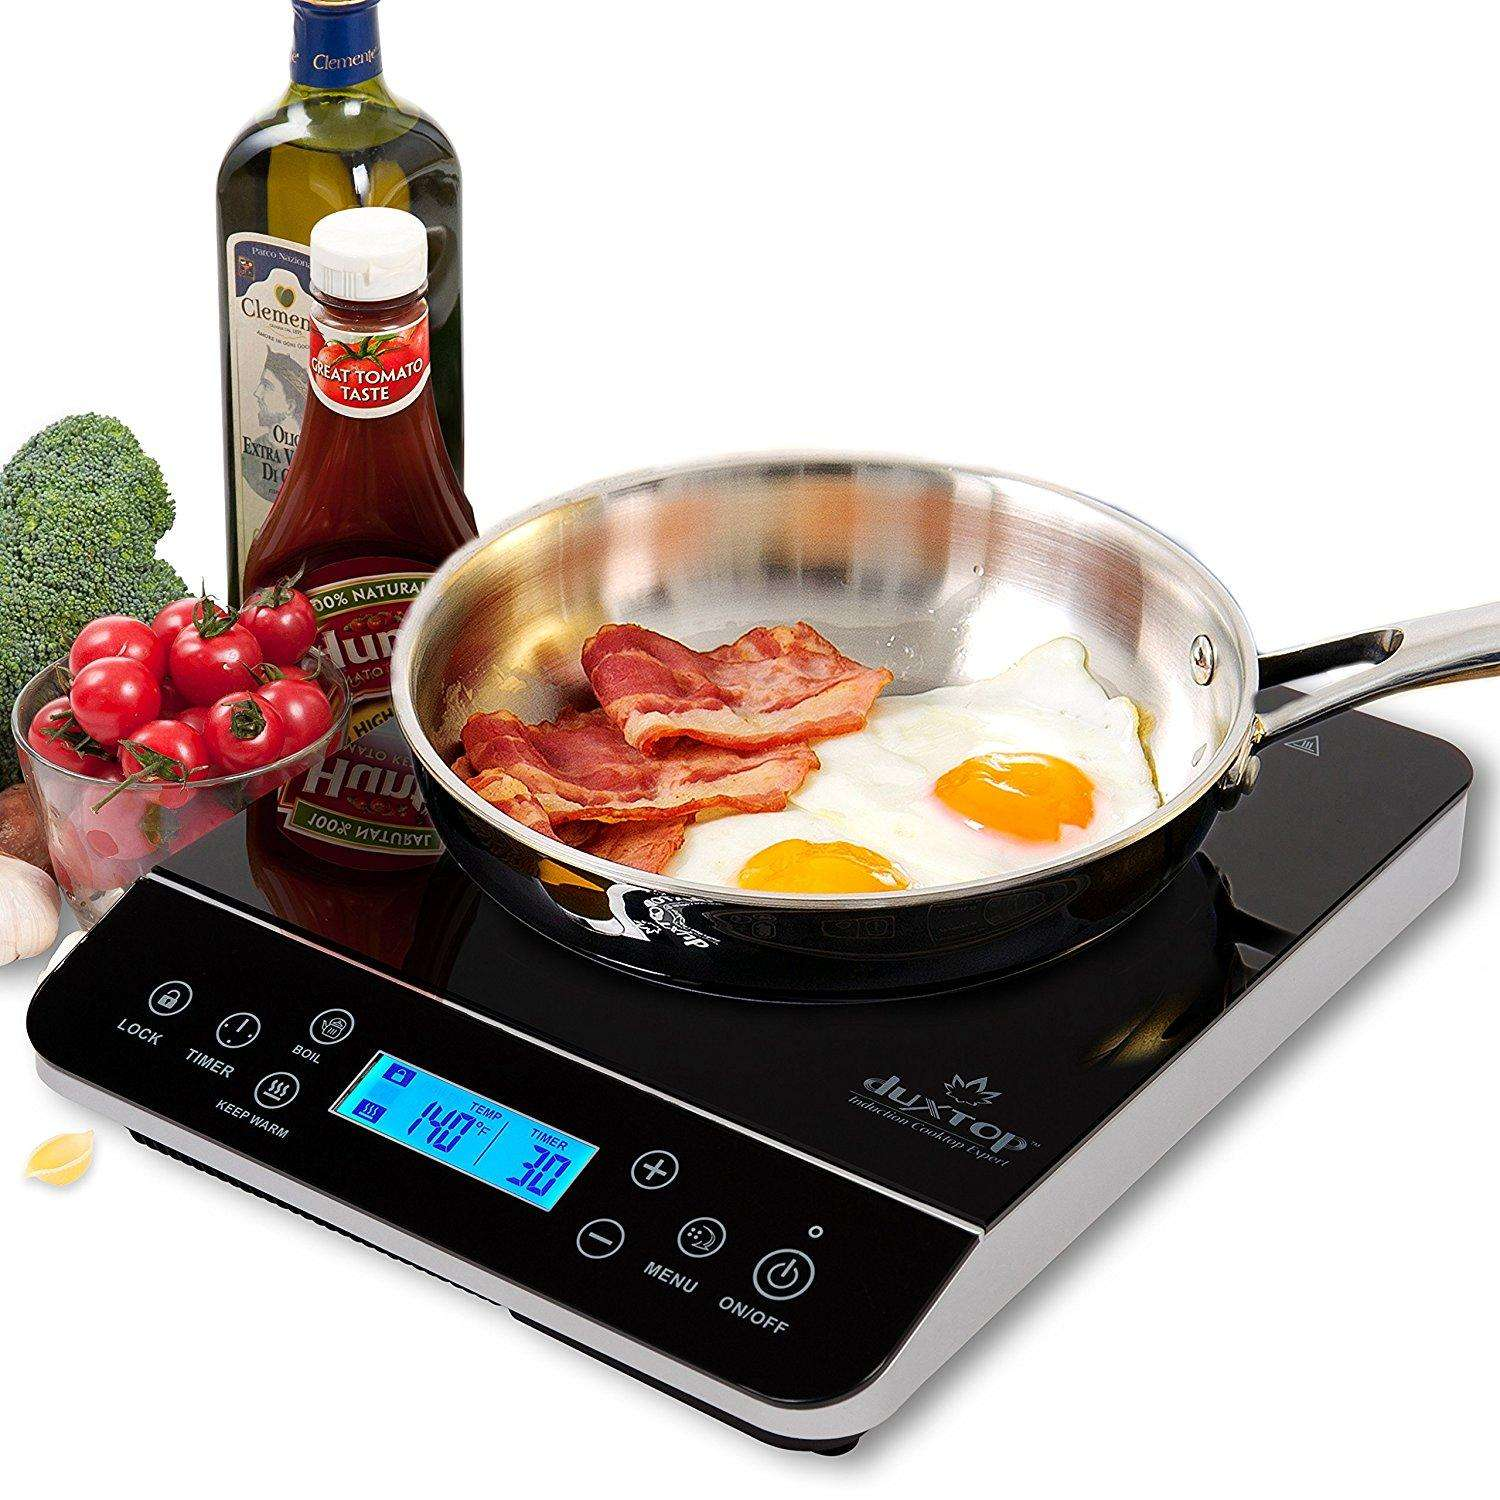 Duxtop 9600LS portable induction burner